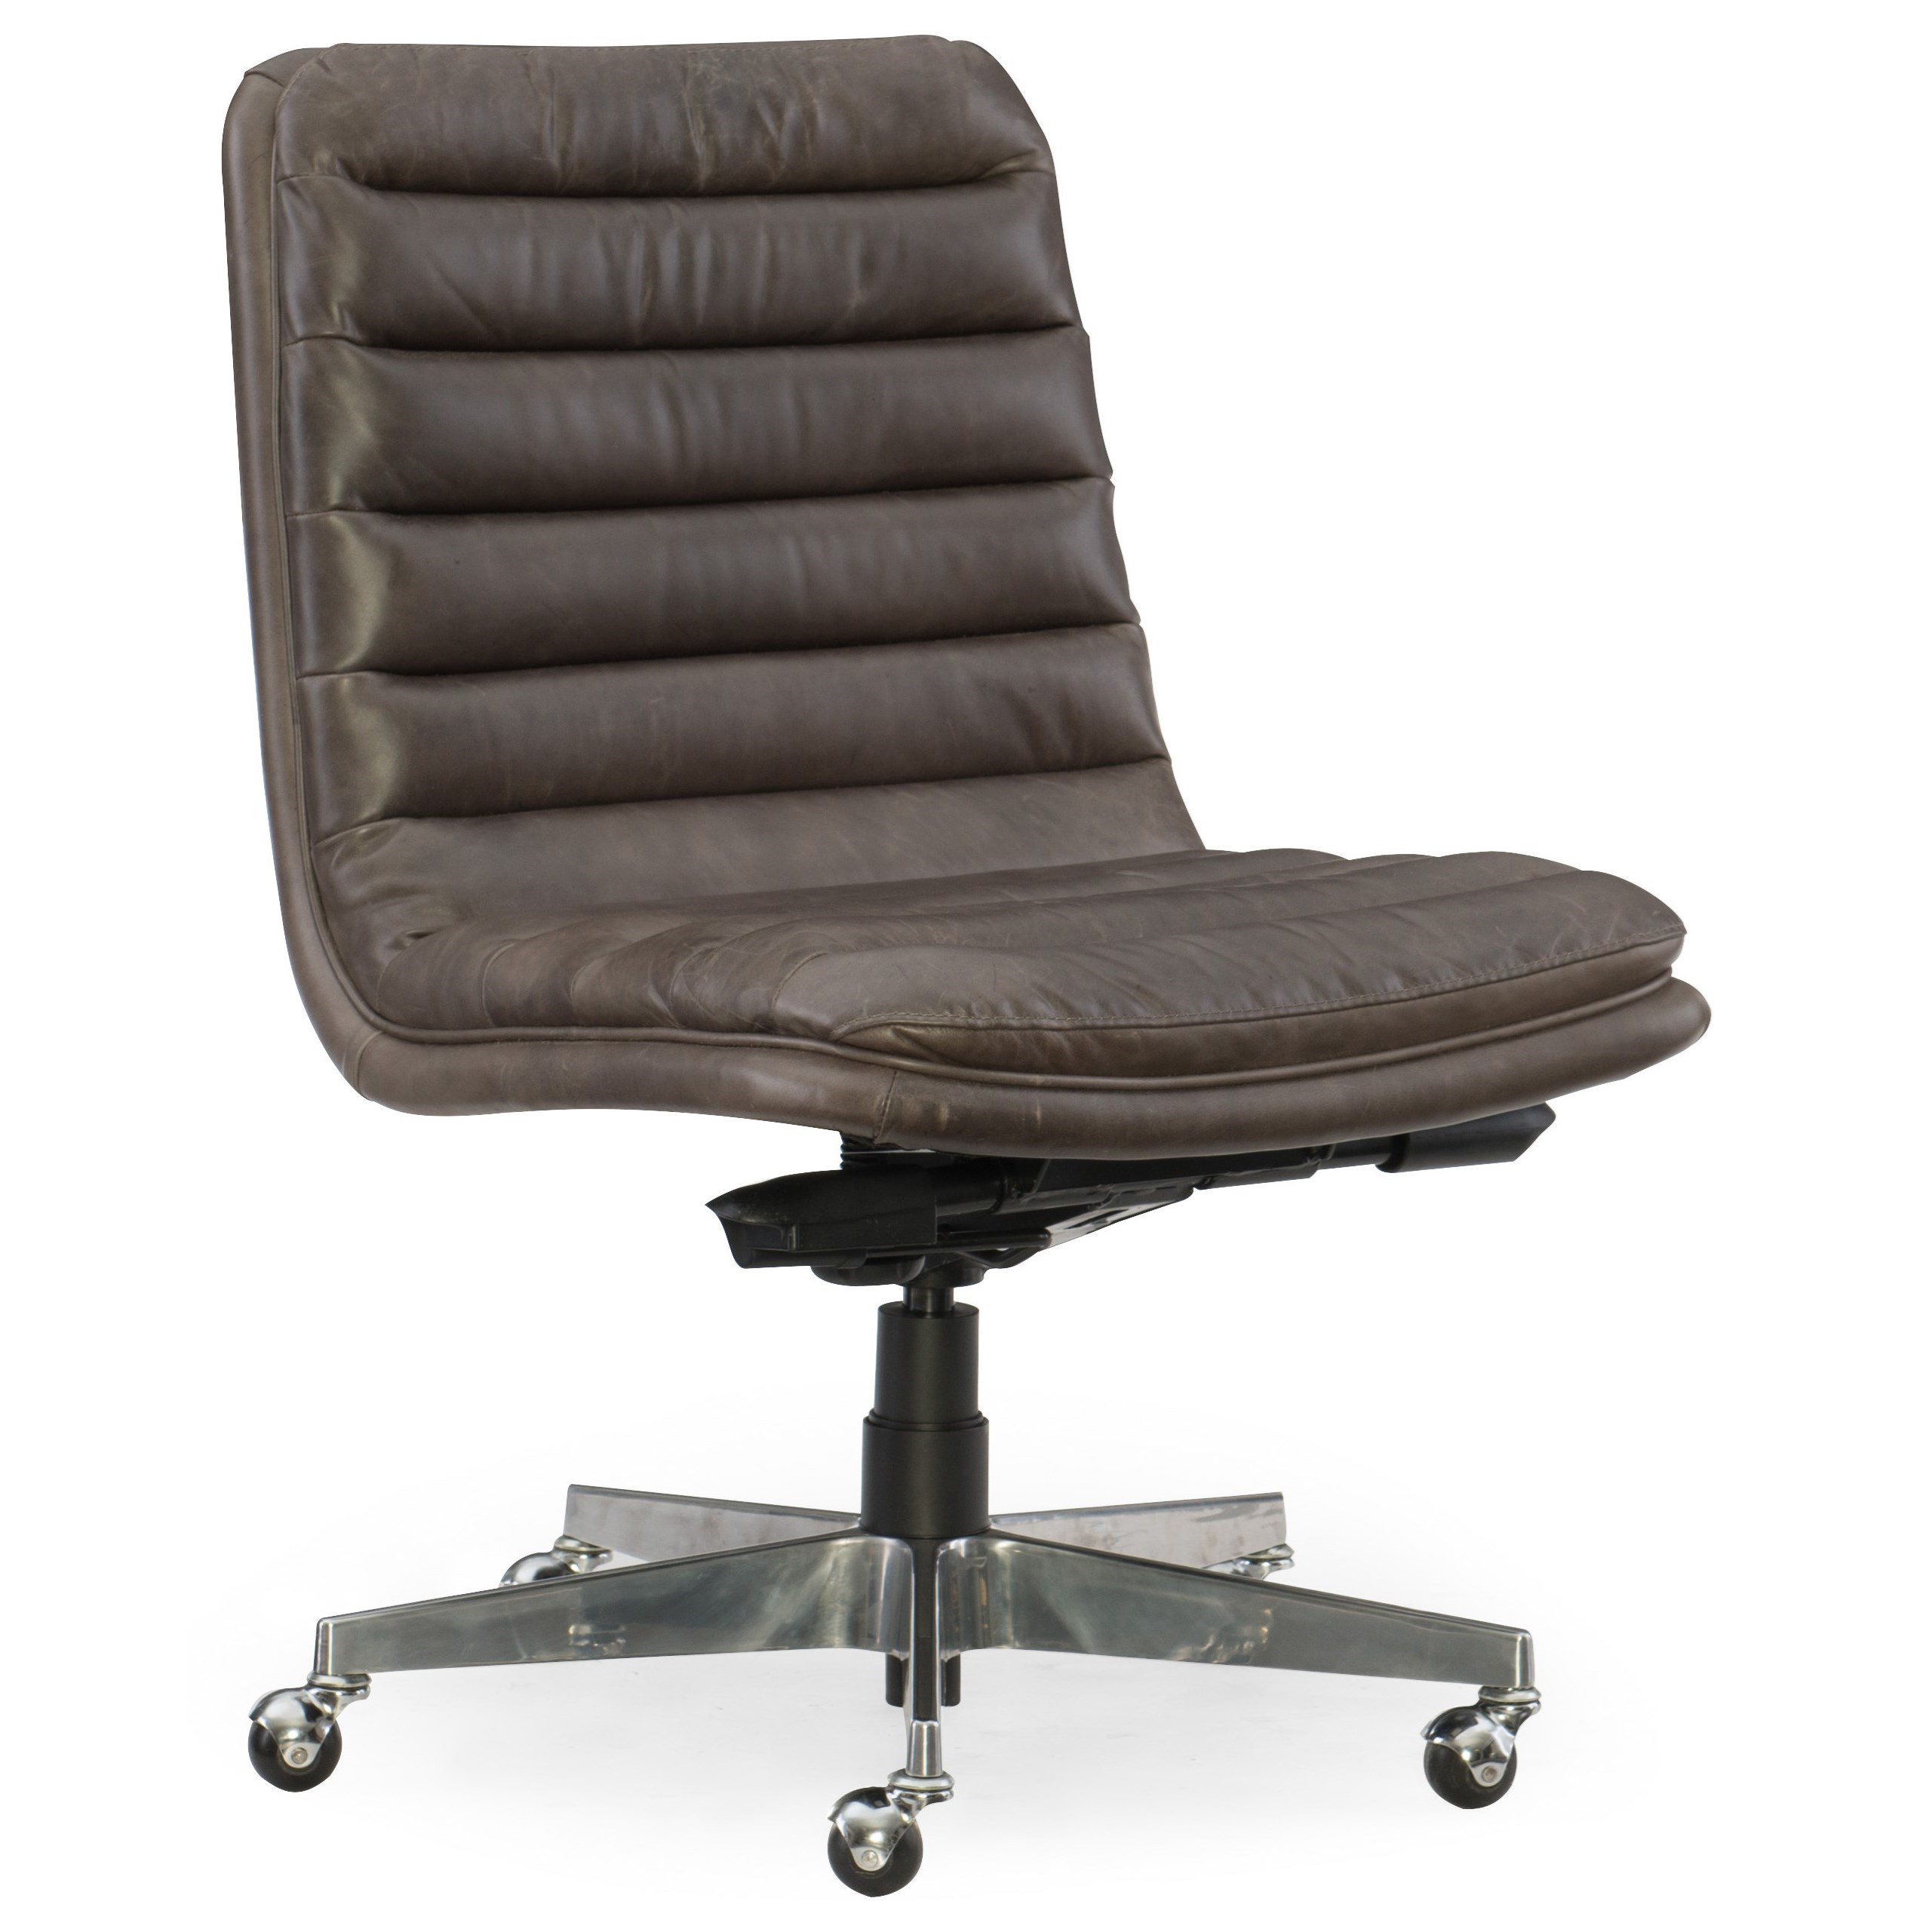 Tufted Leather Office Chair Executive Seating Wyatt Home Office Chair With Chrome Base By Hooker Furniture At Belfort Furniture